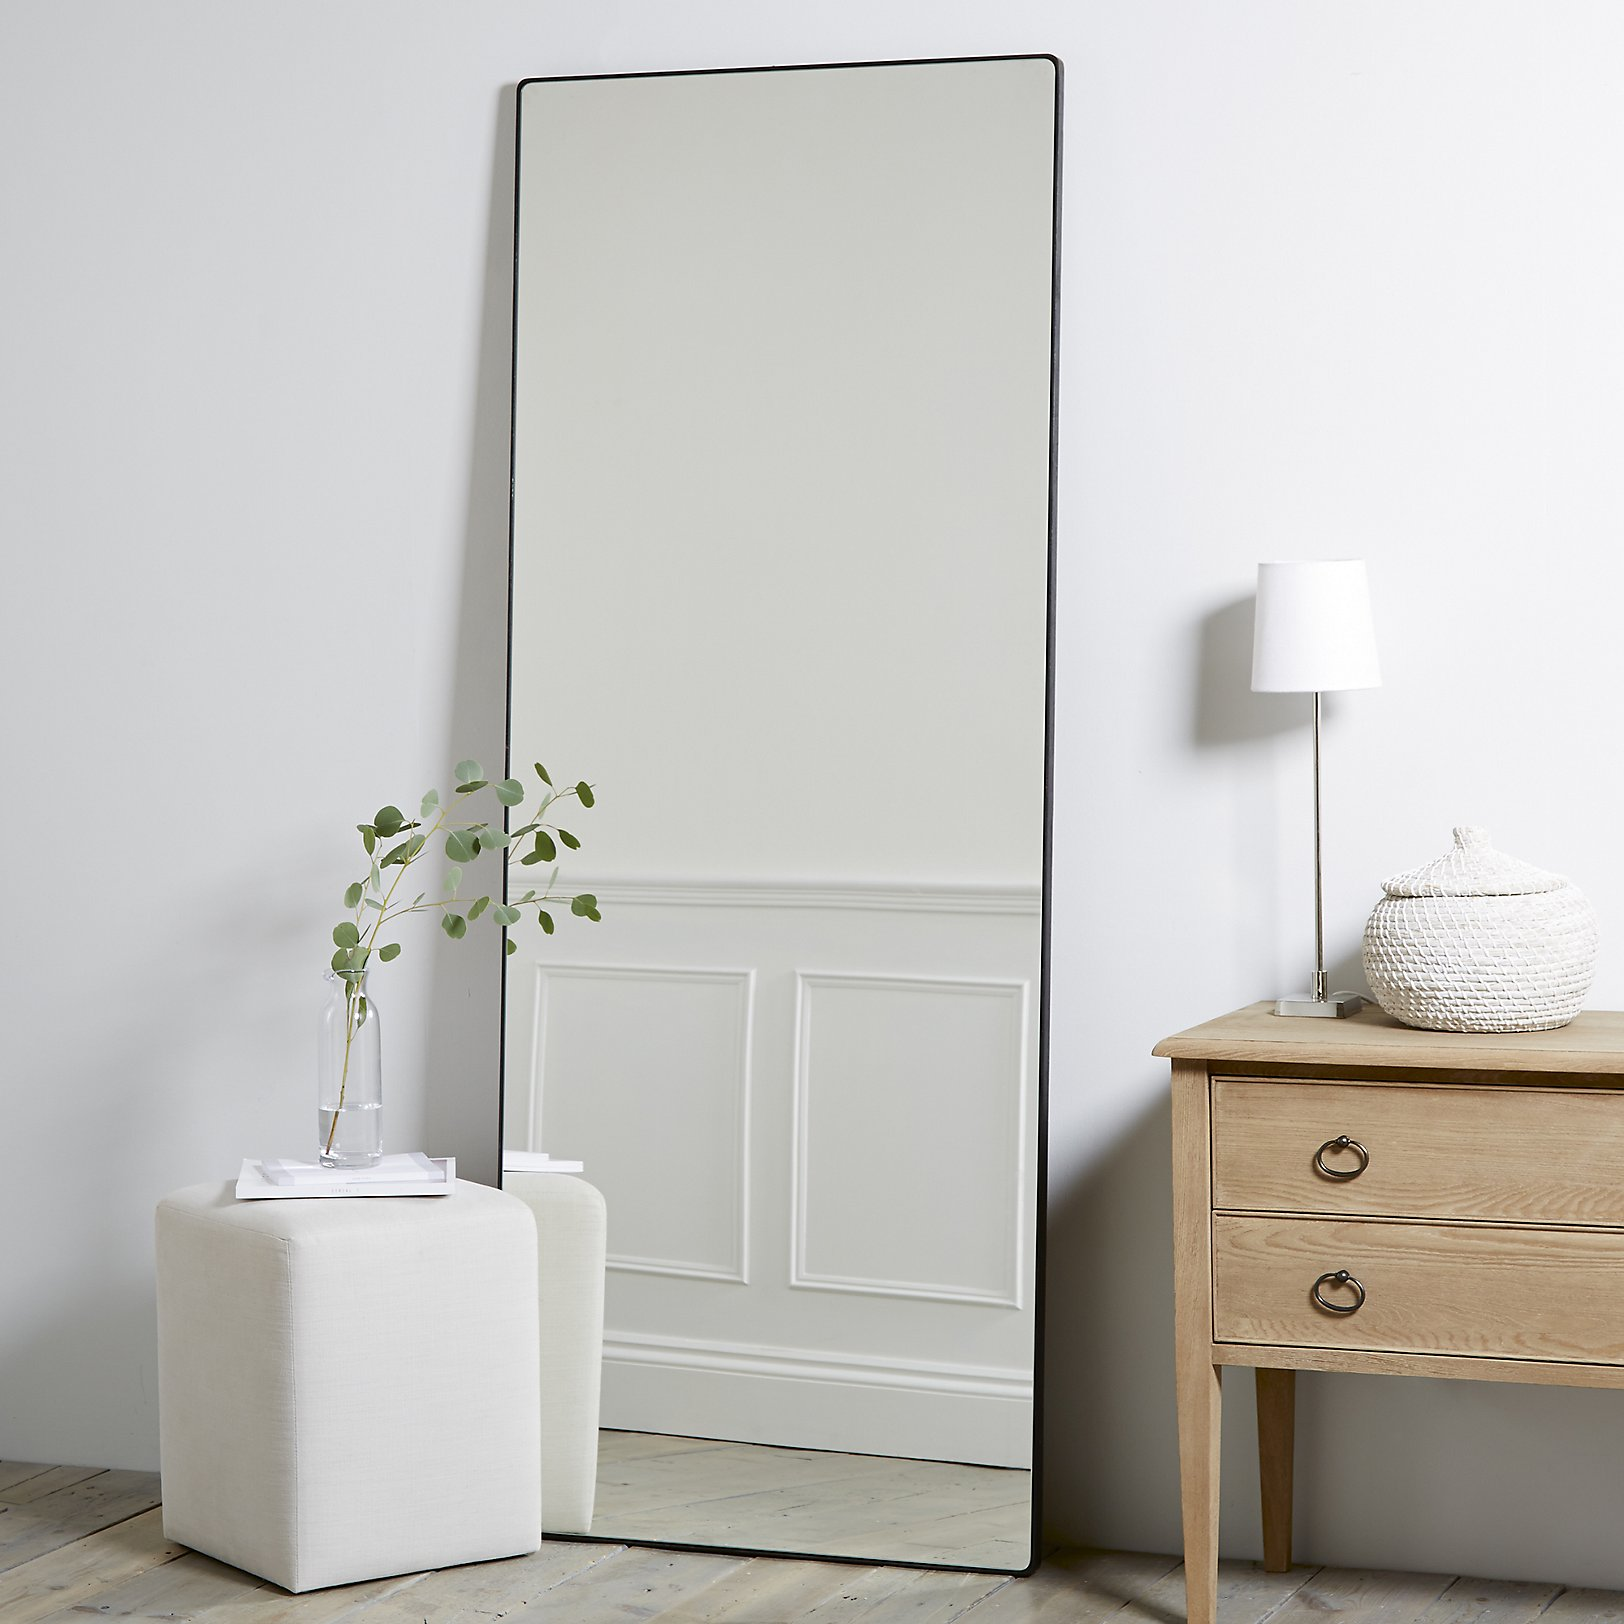 Chiltern Thin Metal Full Length Mirror. Mirrors   Wall  Floor  Dressing Table   Full Length   The White